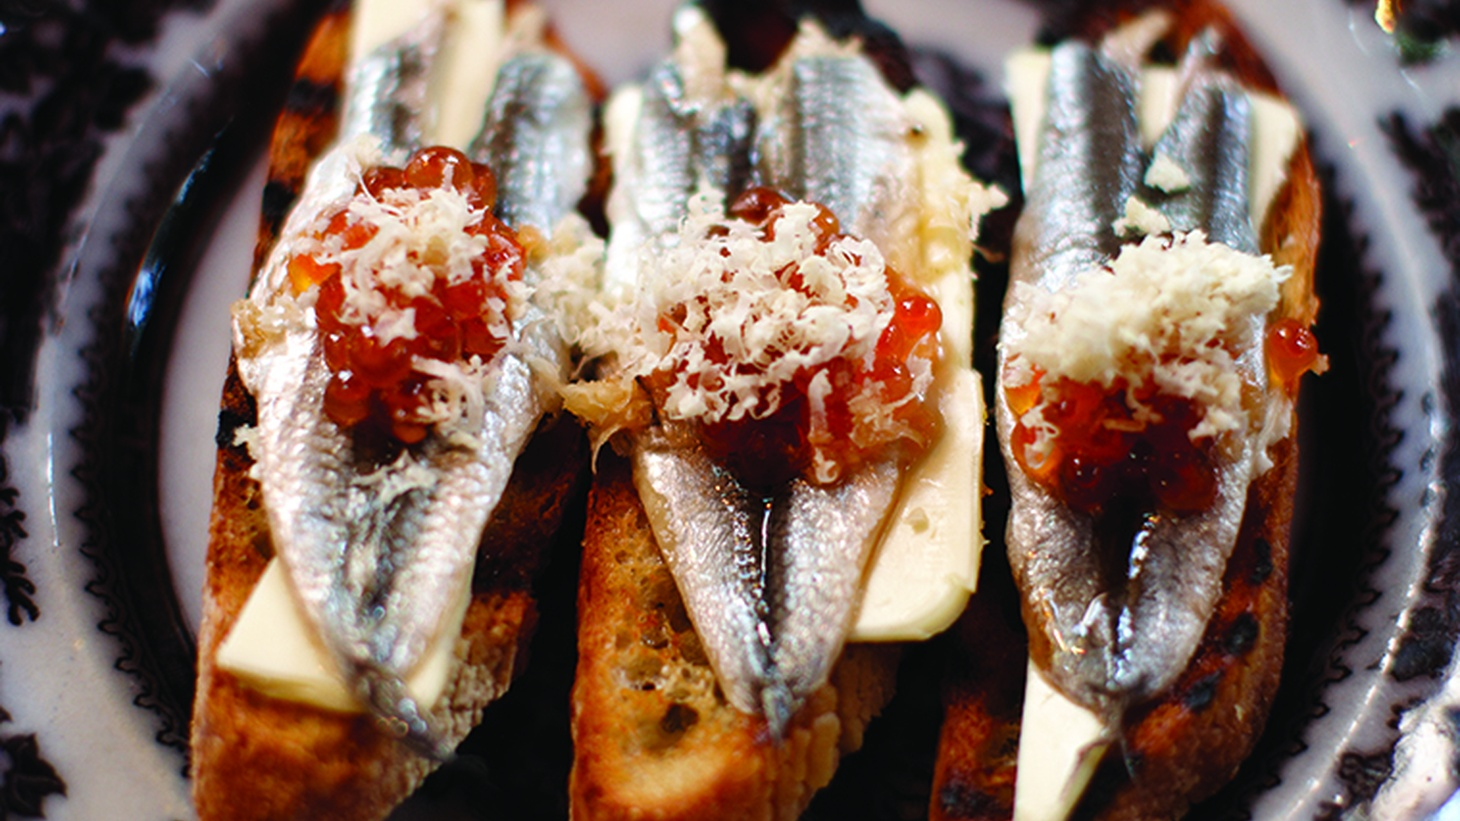 Most American and Italian anchovies are cooked and packed in oil. Boquerones, Spanish white anchovies, are usually vinegar-pickled before an olive oil bath and have a mild, tangy flavor.